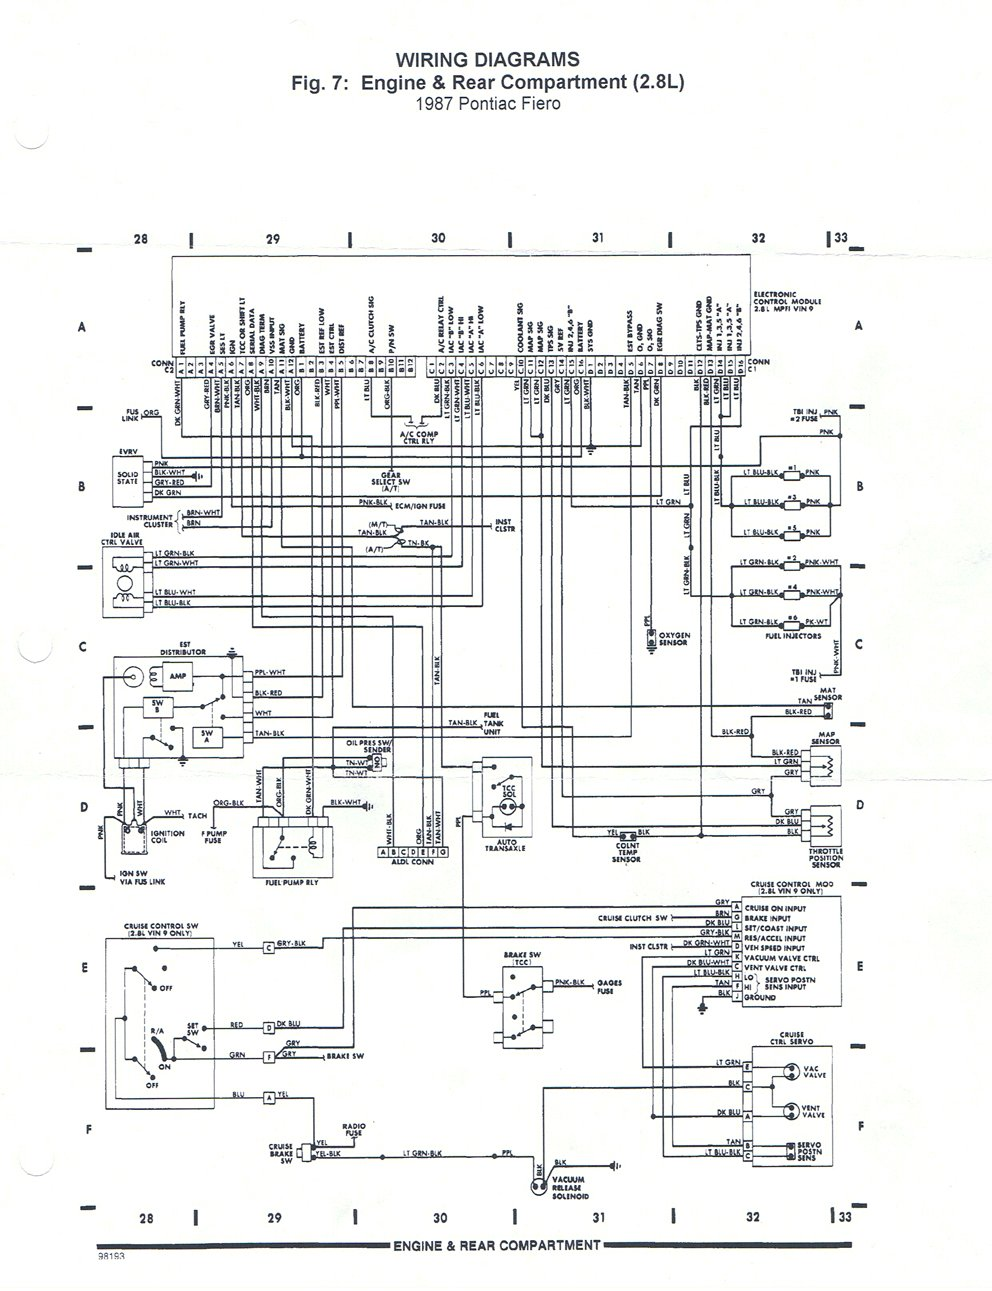 87FieroEng_wire_1 where can i find a diagram of the wiring harness? pennock's 3800 supercharged fiero wiring diagram at bakdesigns.co